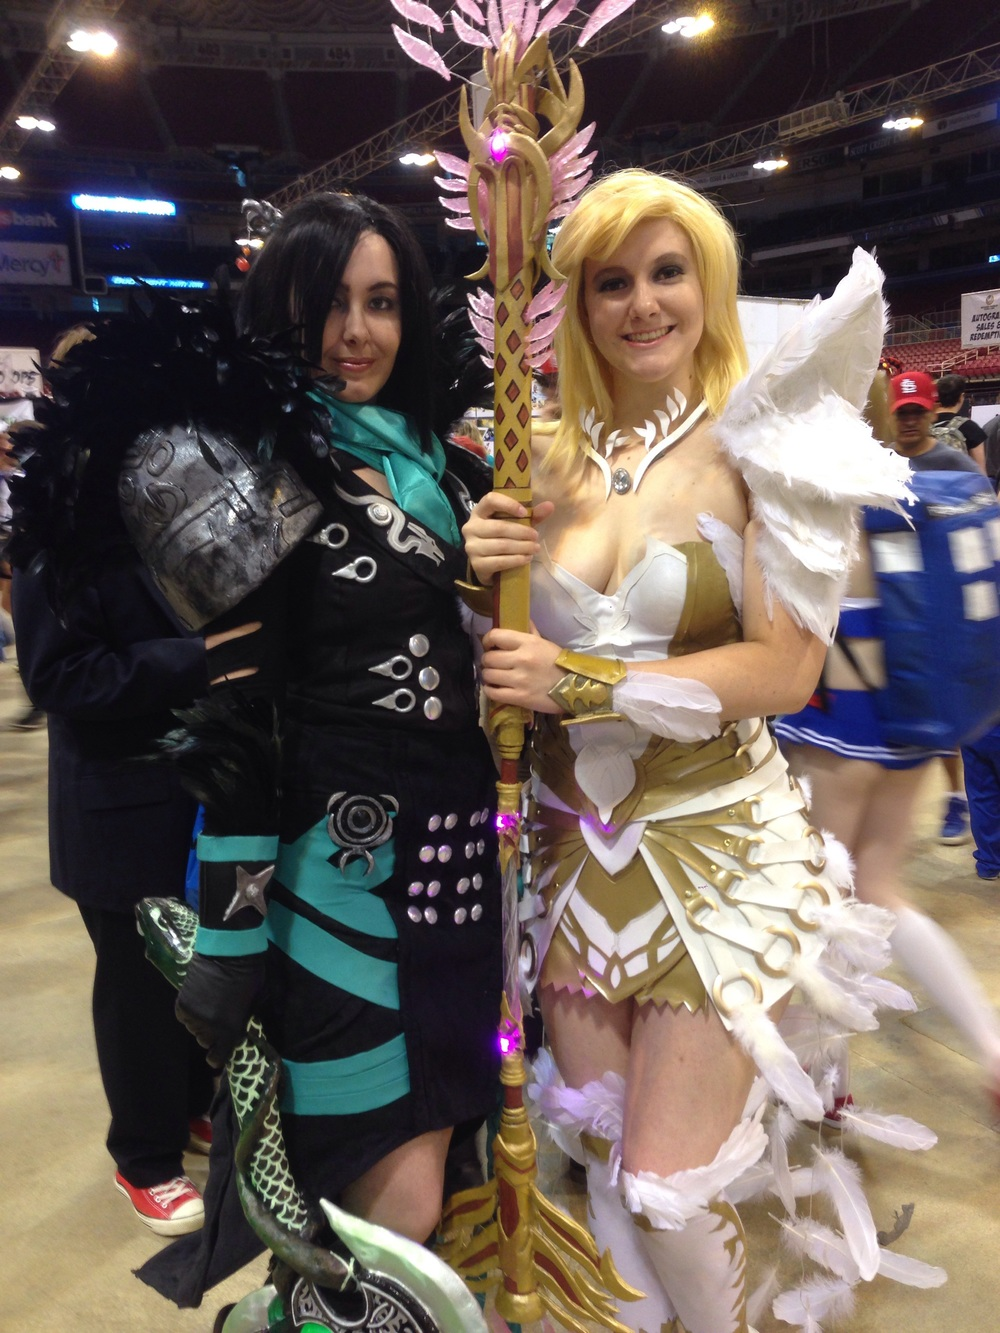 I tip my hat to these lovely ladies.  That's some complex armor.  Great work!